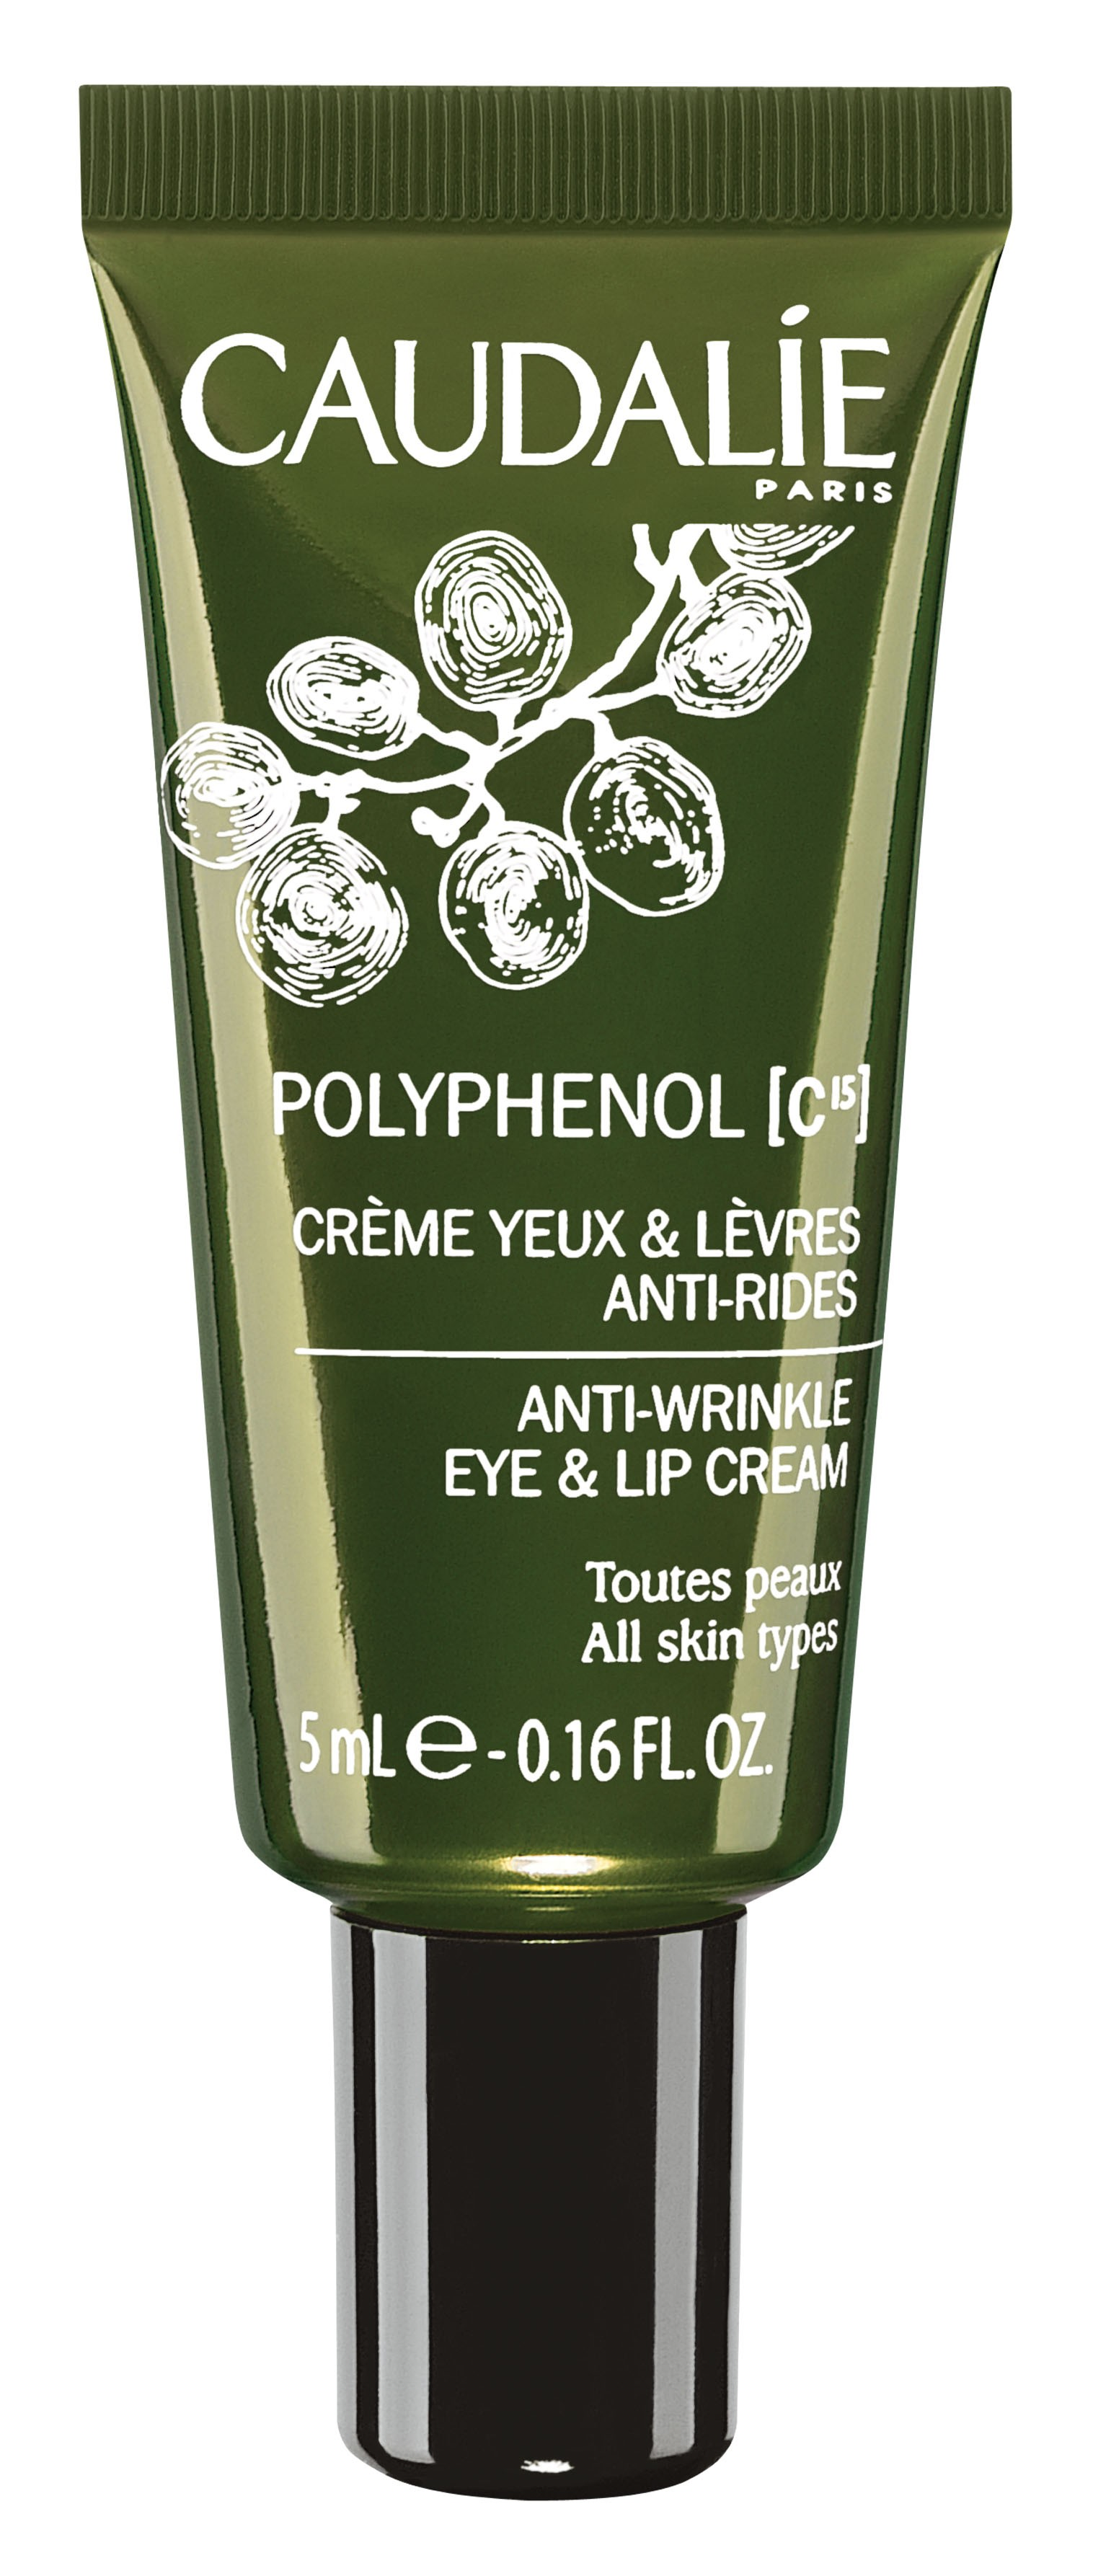 Polyphenol Eye & Lip Cream